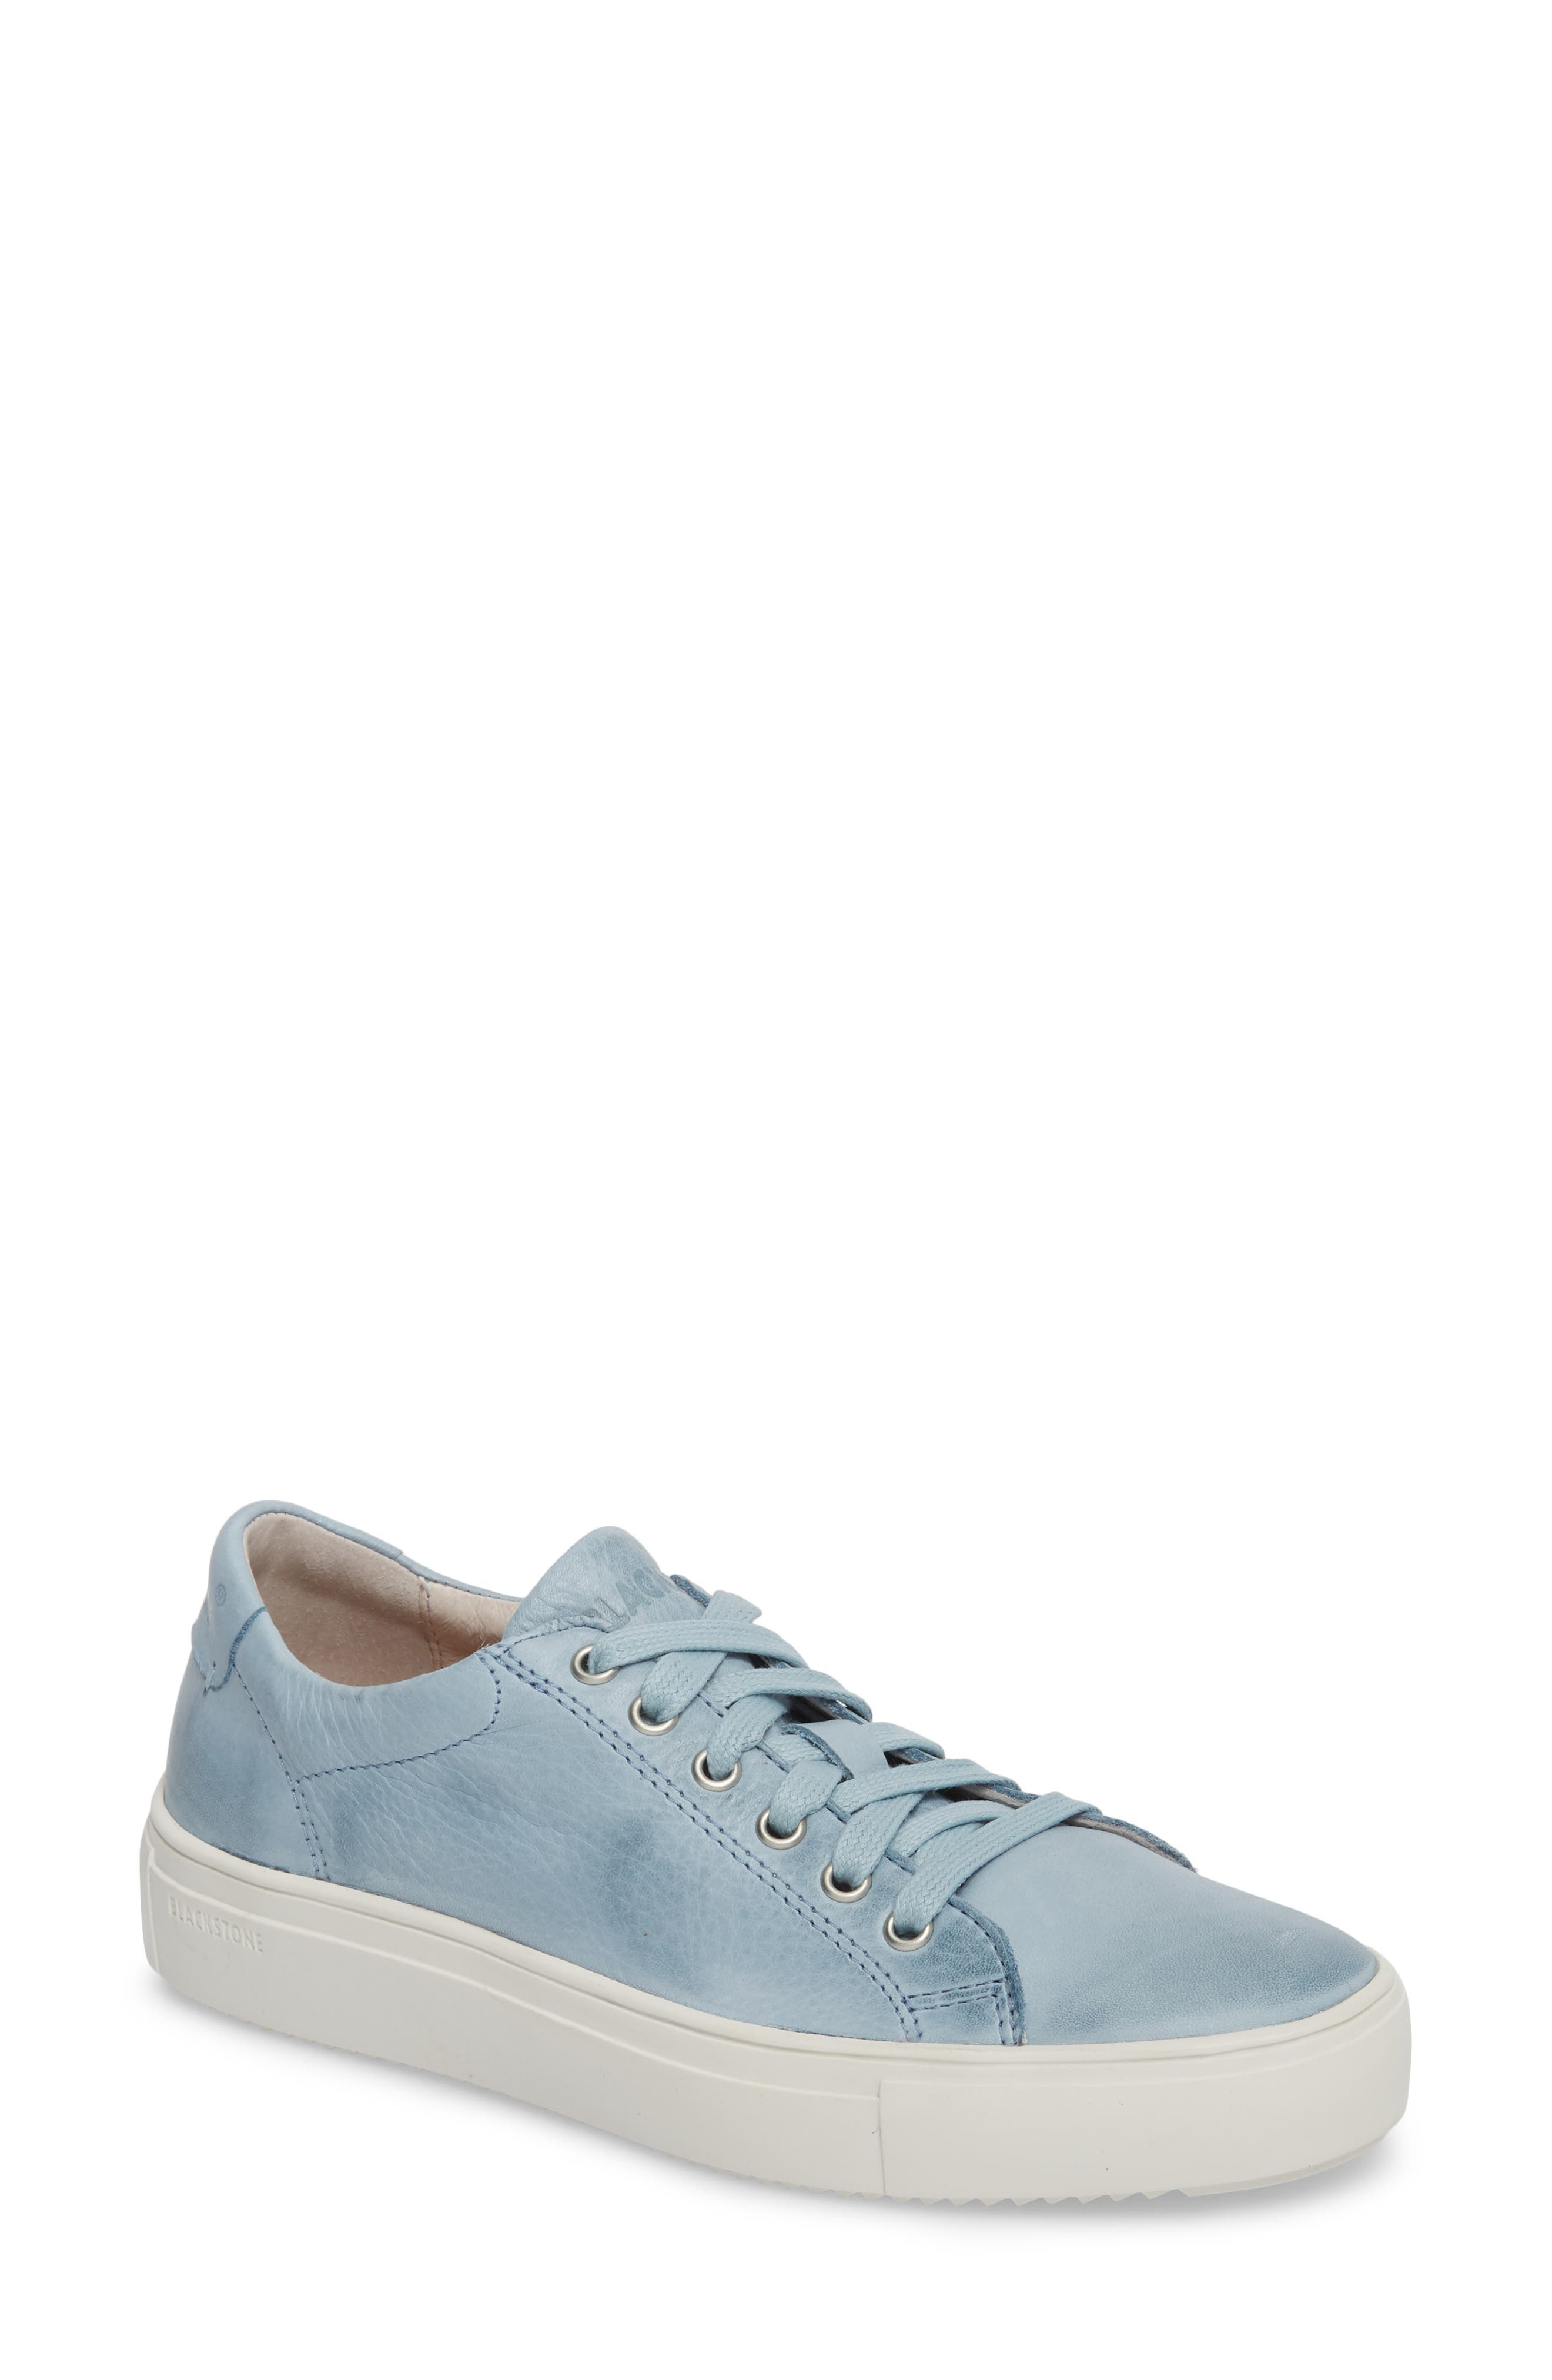 PL71 Low Top Sneaker,                             Main thumbnail 1, color,                             Sky Blue Leather